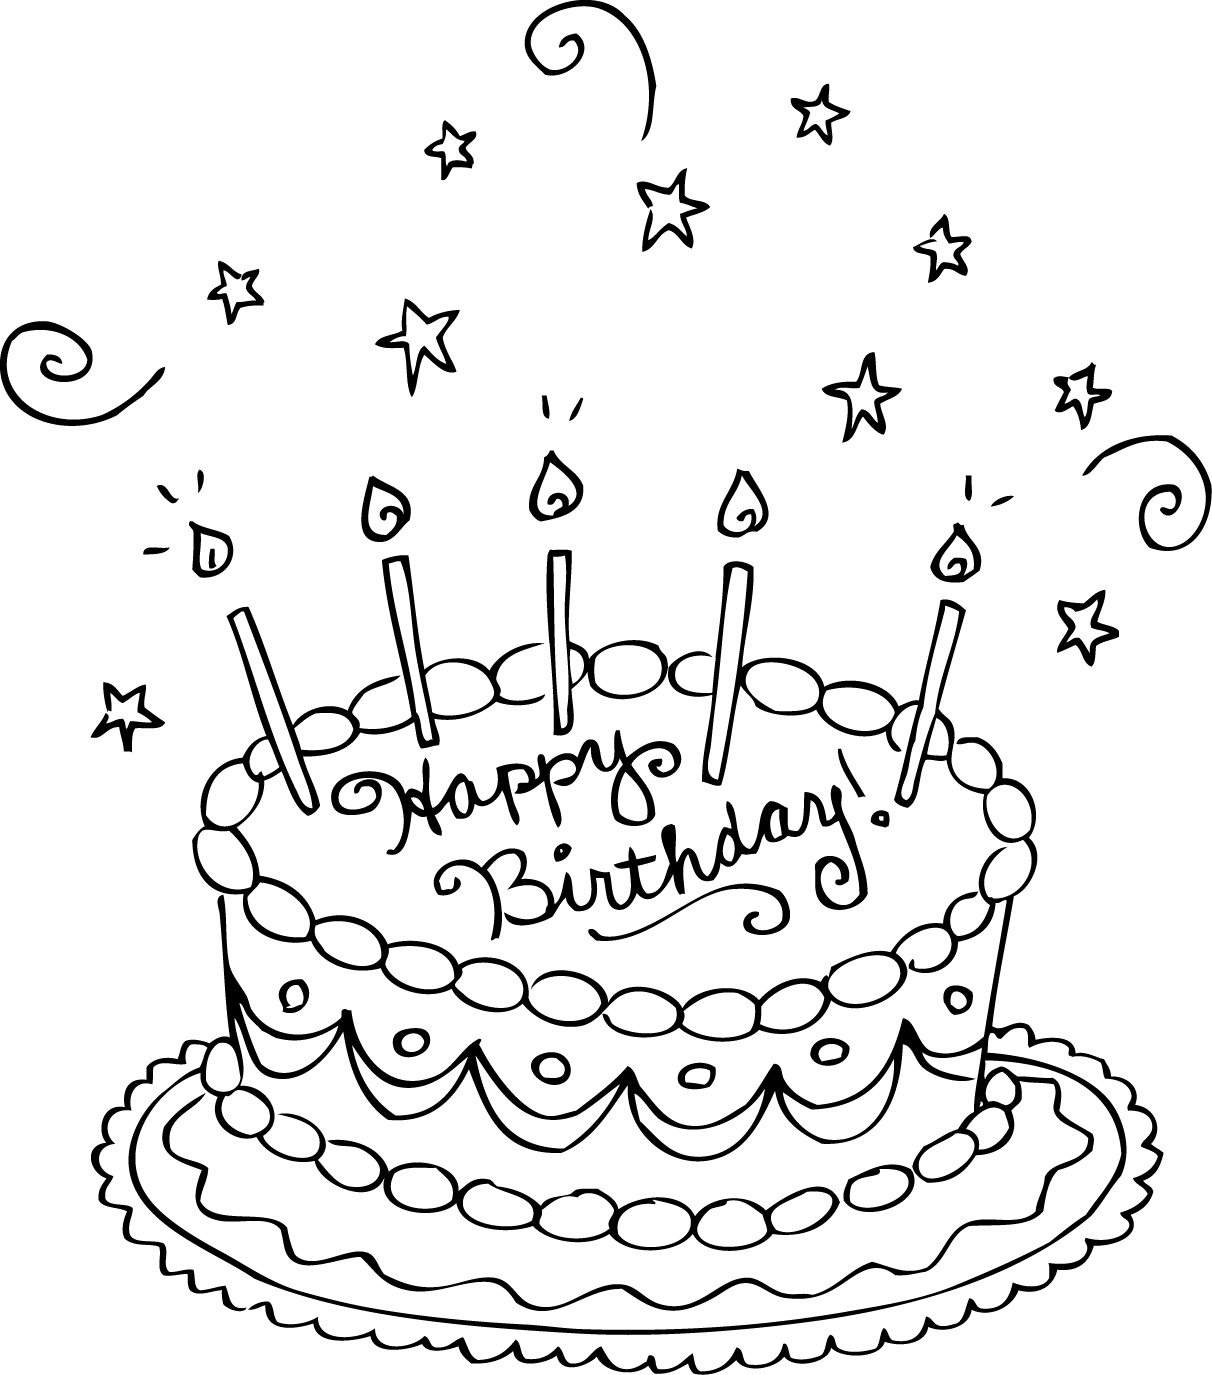 coloring birthday printable birthday cake coloring pages to download and print for free coloring printable birthday